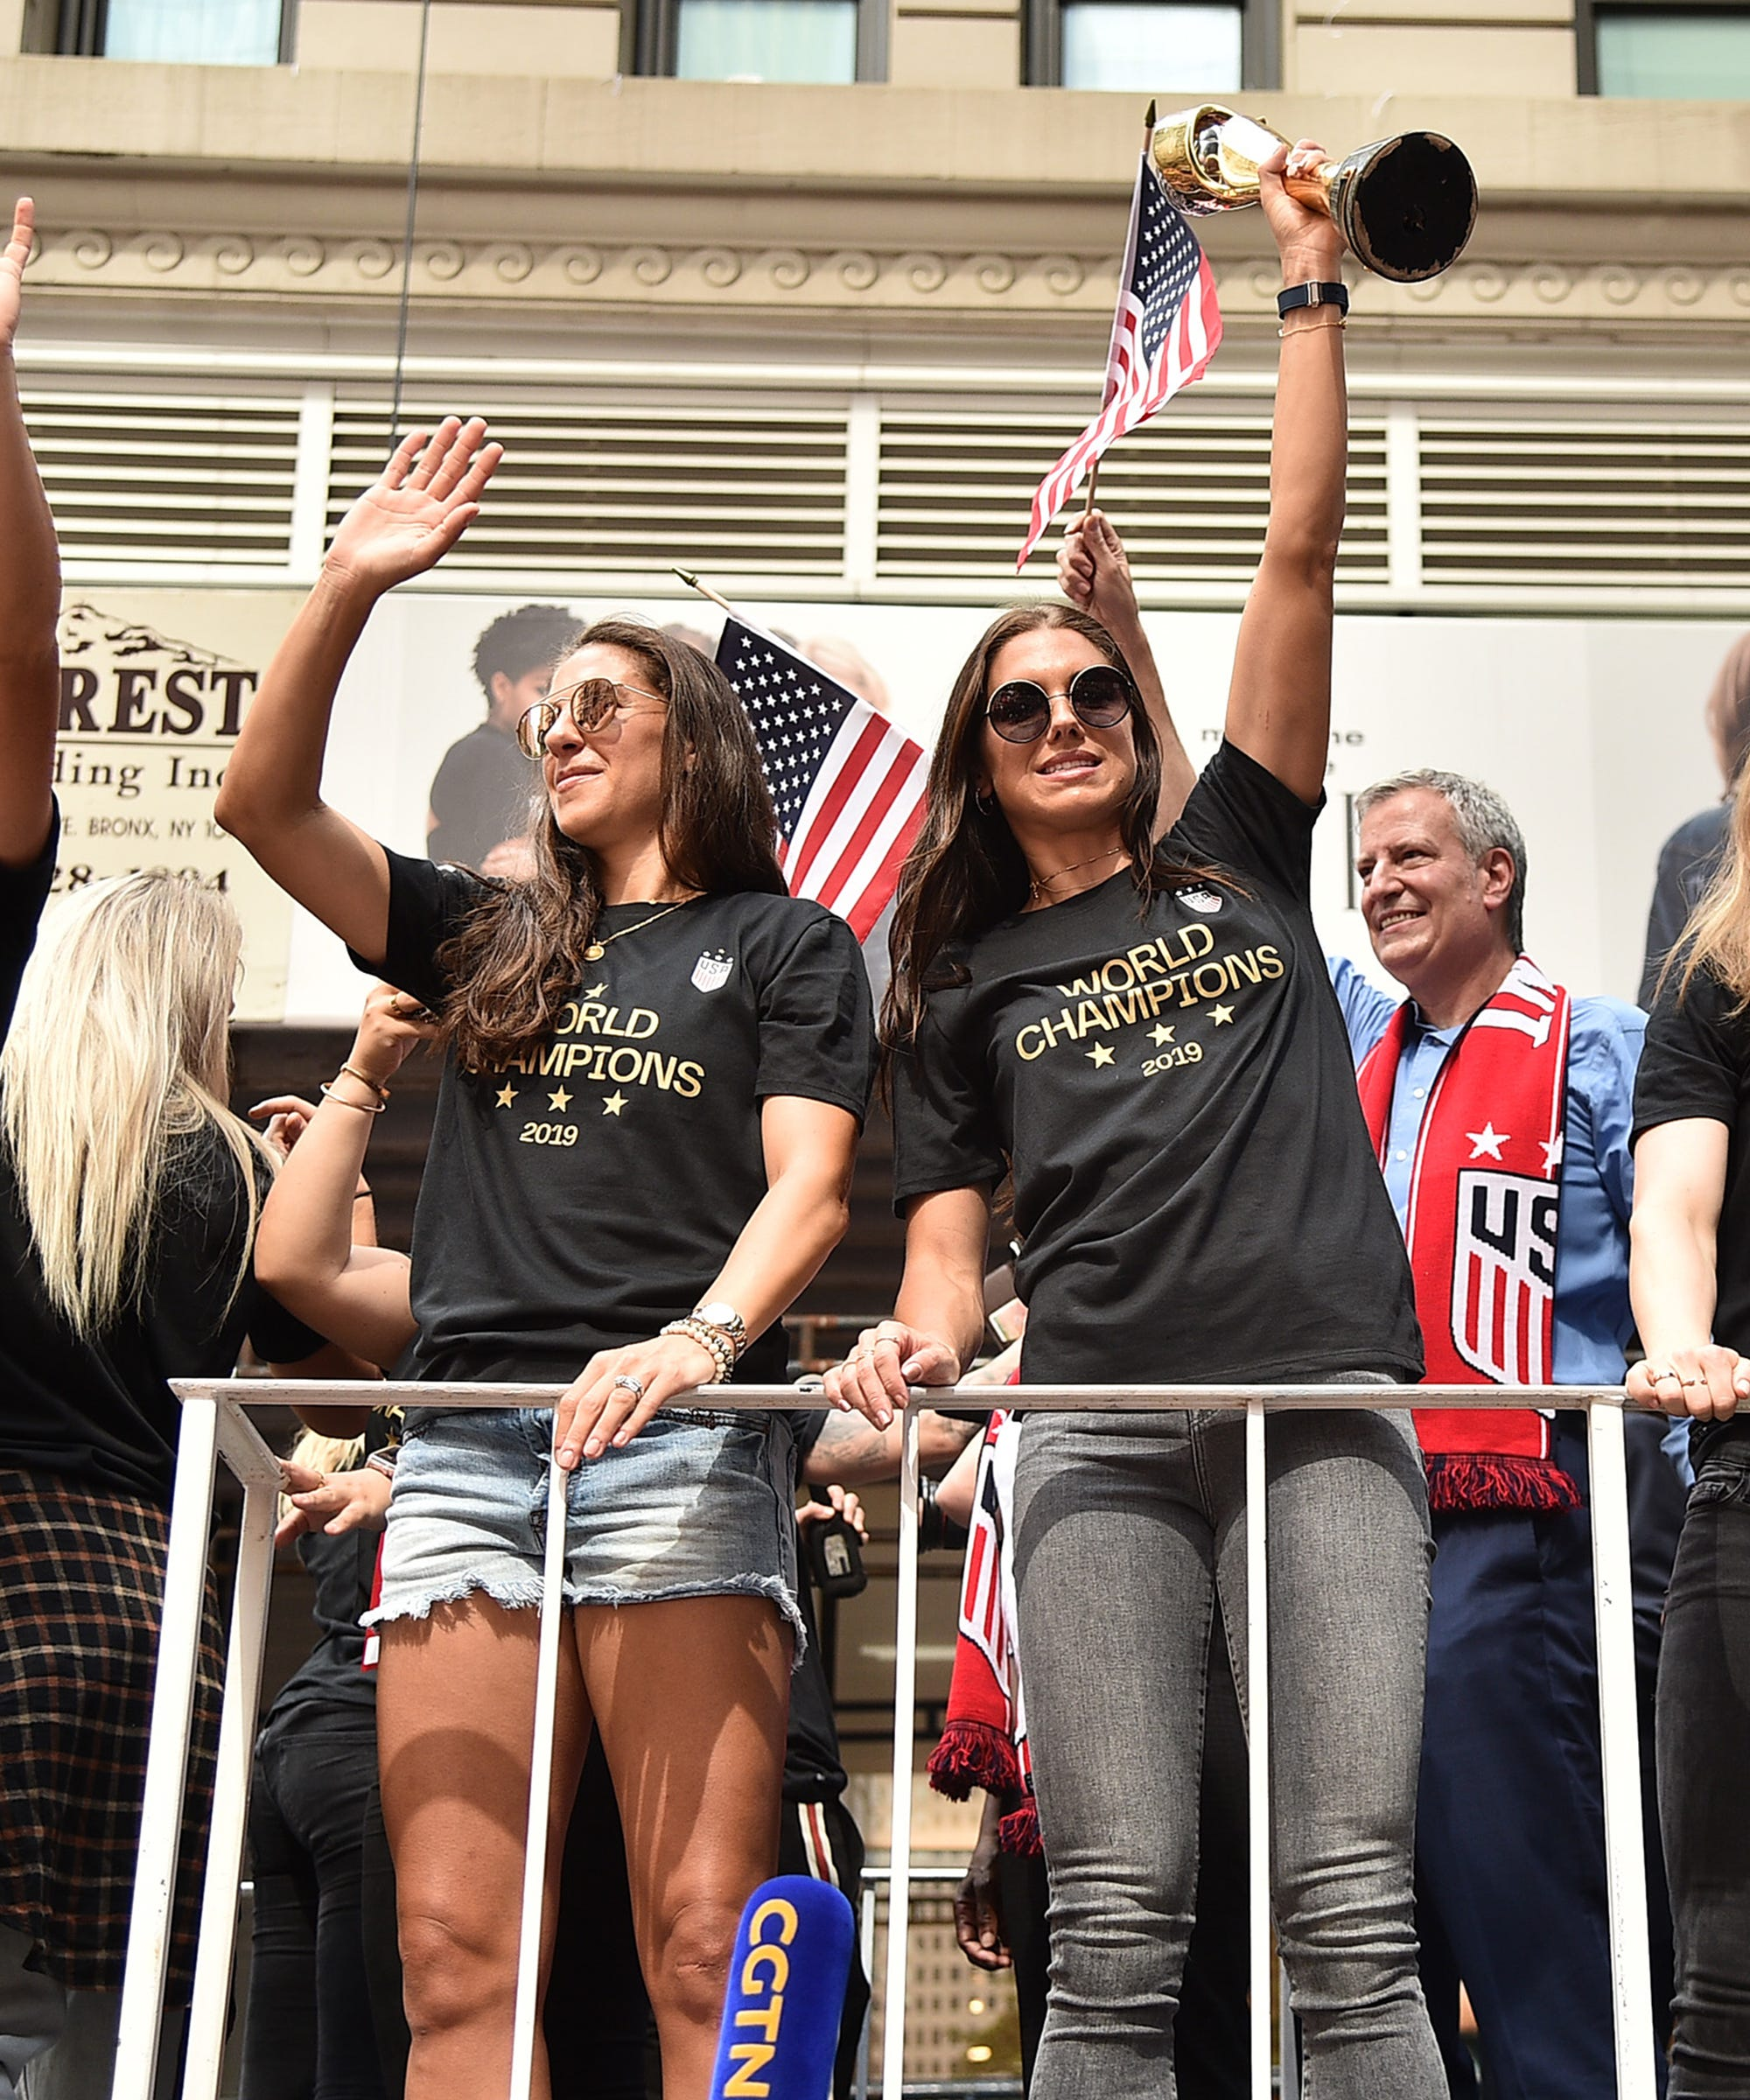 Here's What Real People Think About The U.S. Women's Soccer Team Demanding Equal Pay